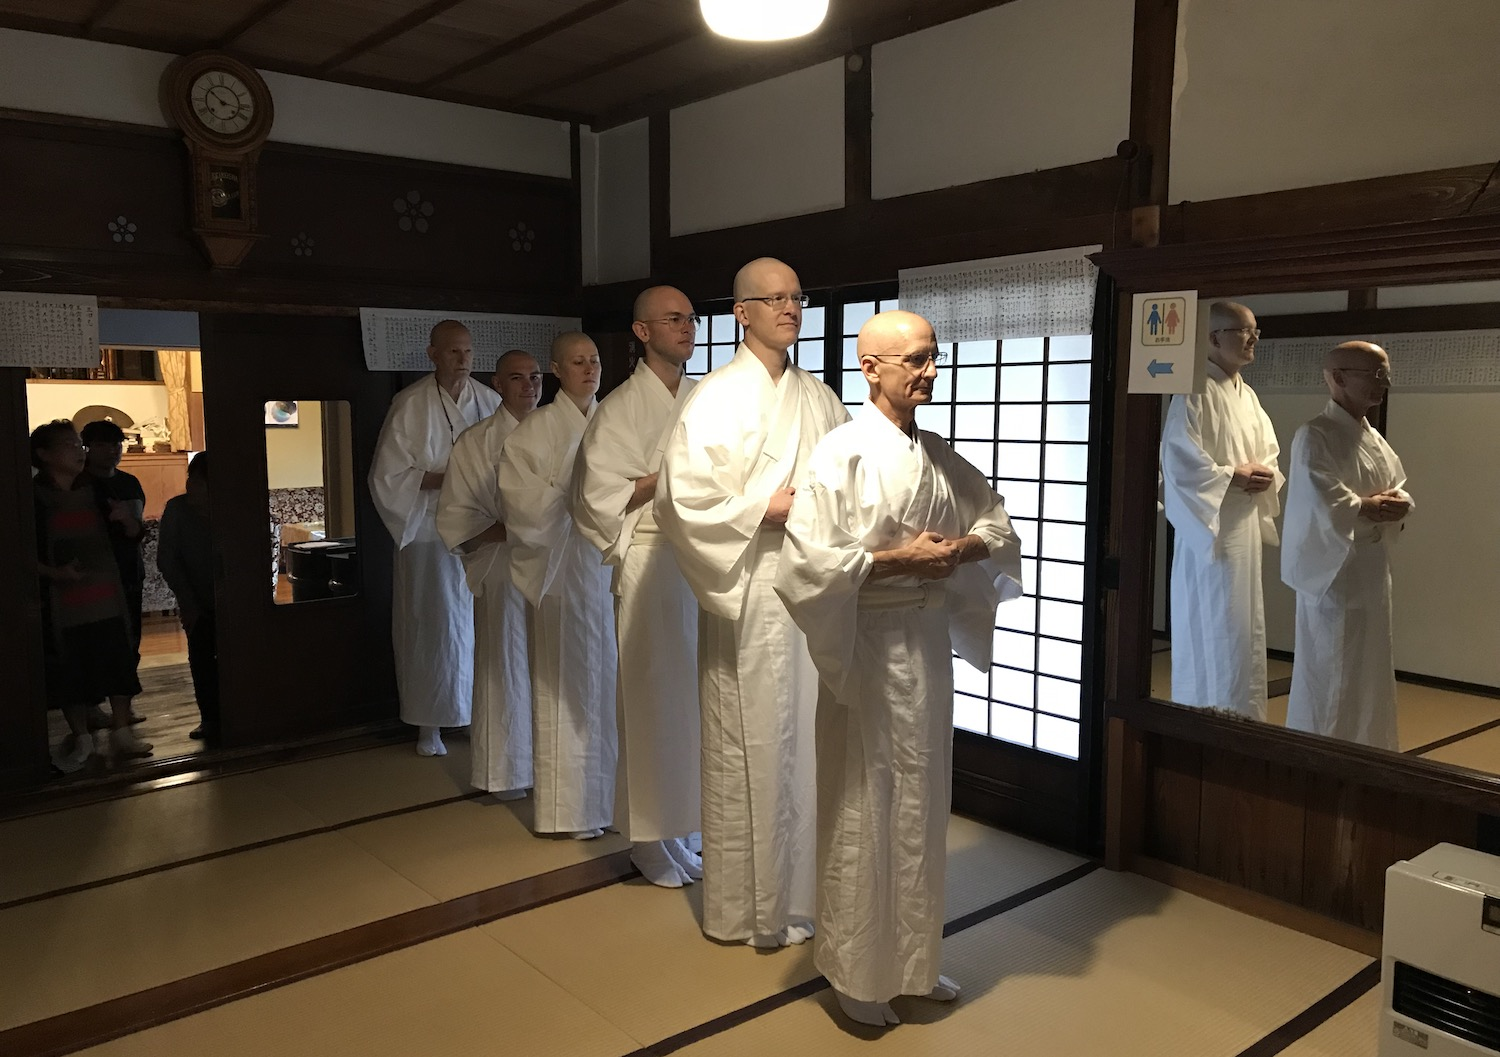 The procession at the start of the ceremony, wearing kimonos.